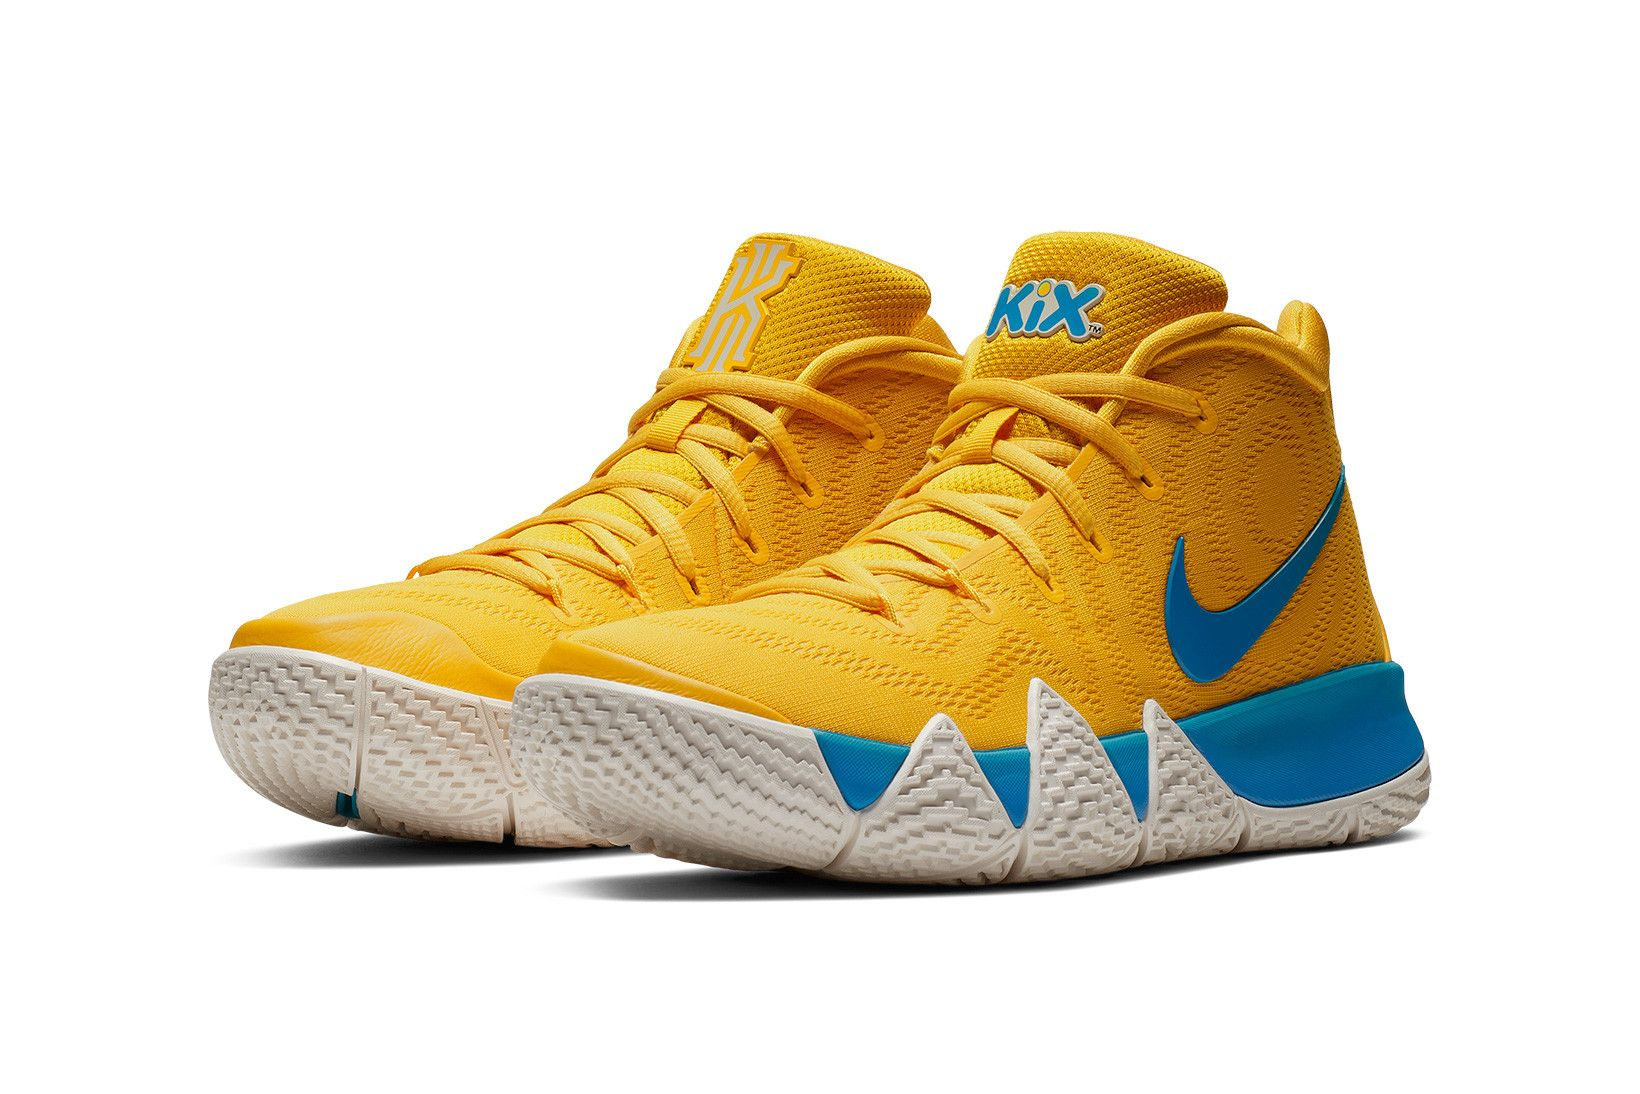 low priced e06d6 b2aa5 The Nike Kyrie 4